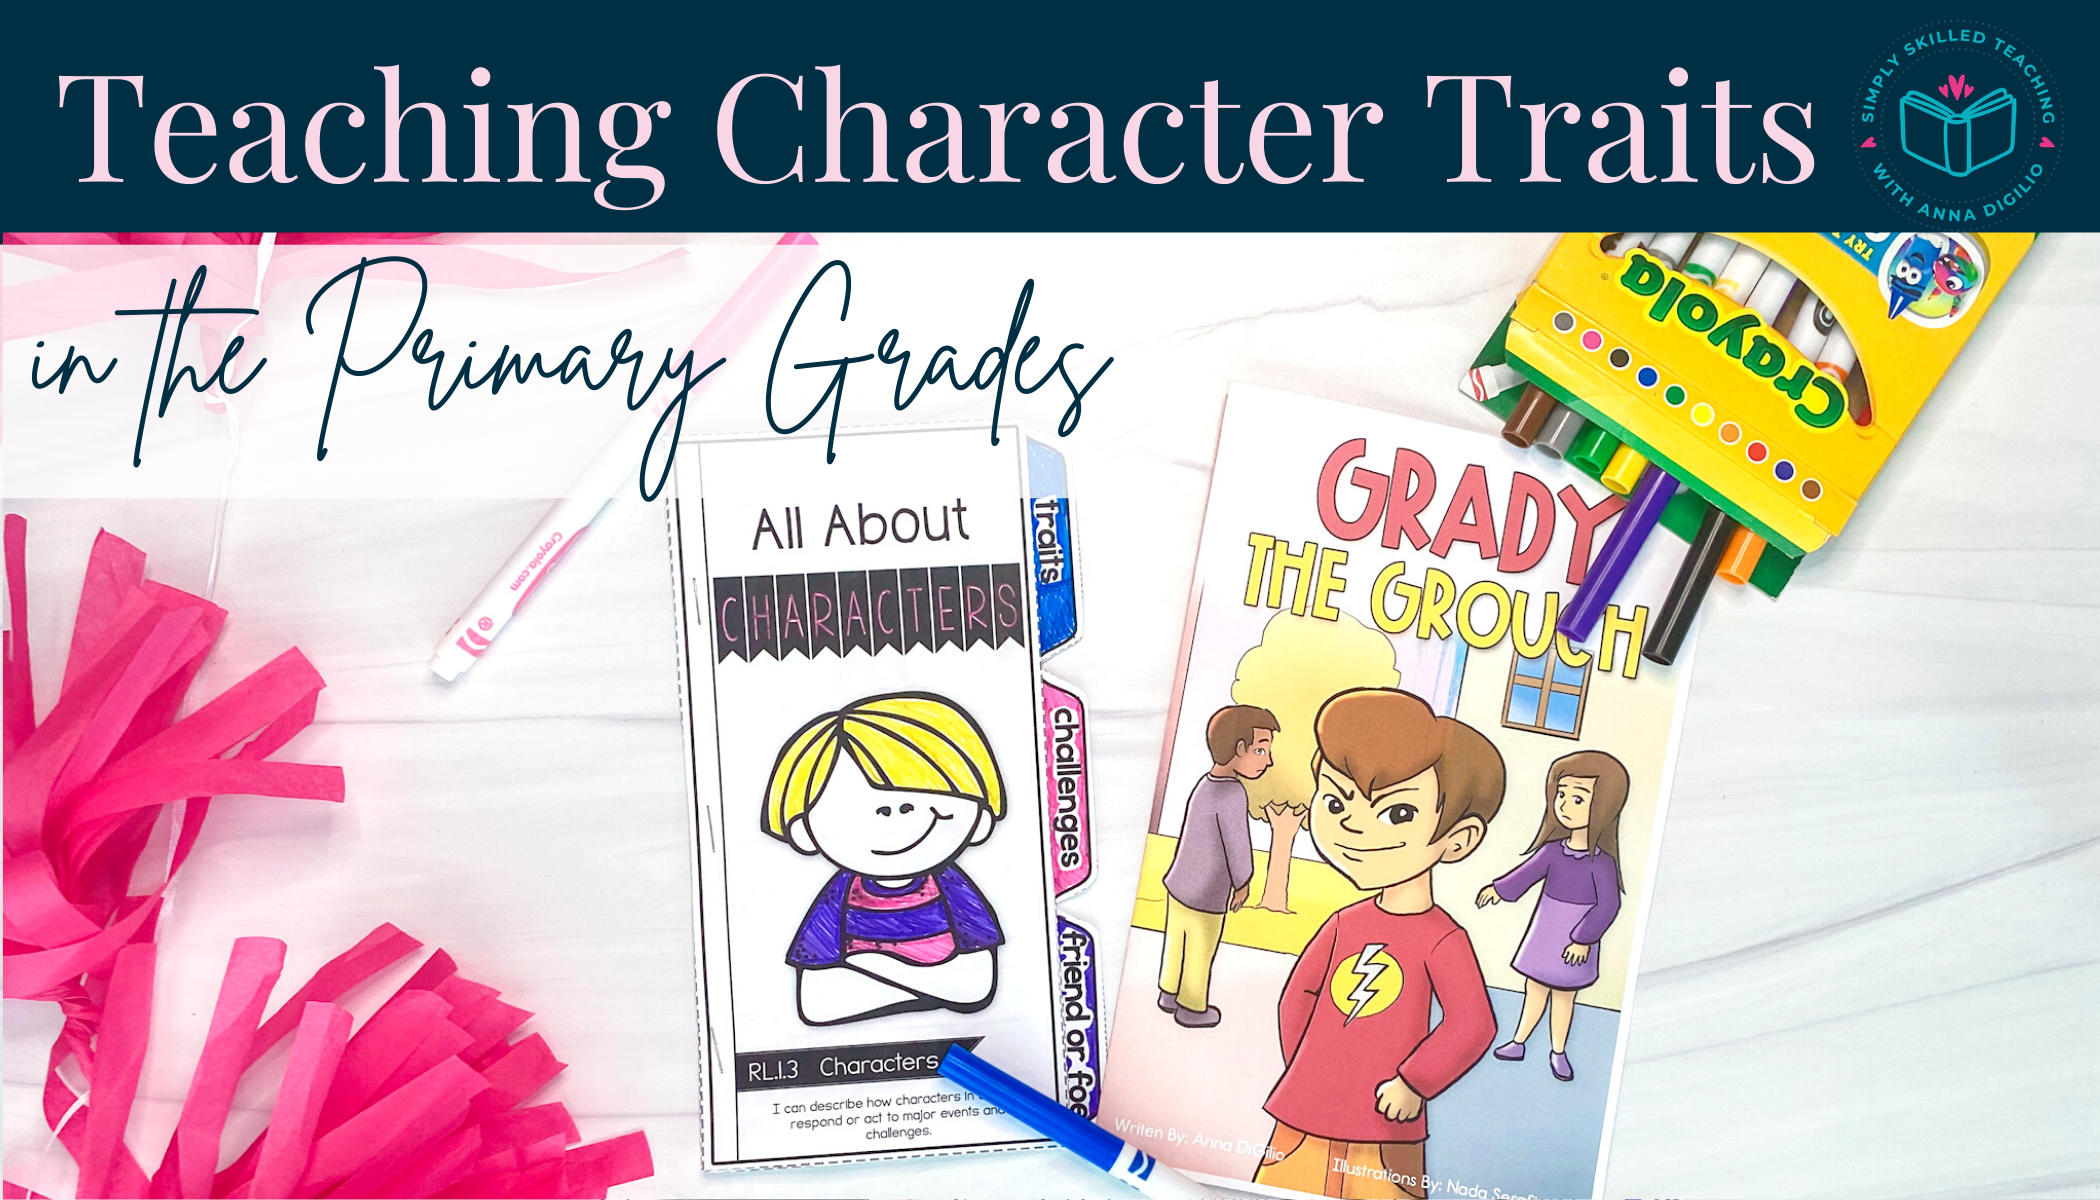 """A box of Crayola markers with a few spilling out over a book titled """"Grady the Grouch"""" that has a little boy smirking next to a paper that says """"All About Character"""" with a picture of a blonde boy next to pink confetti with the title over the image """"Teaching Character Traits in the Primary Grades"""""""